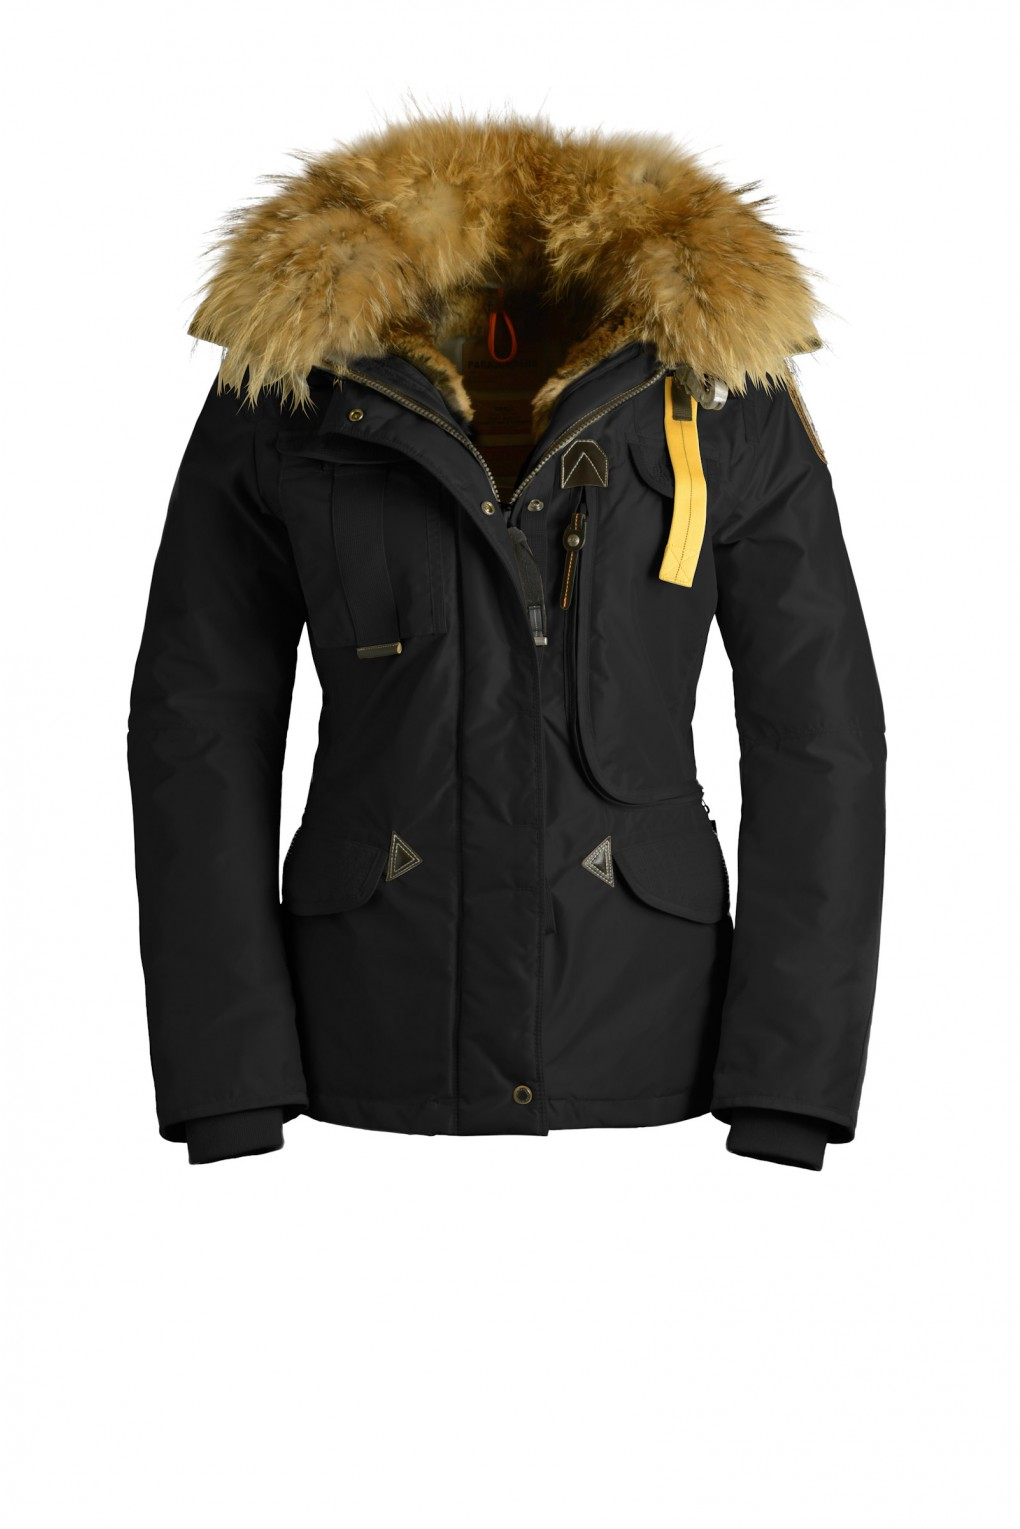 parajumpers DENALI woman outerwear Black